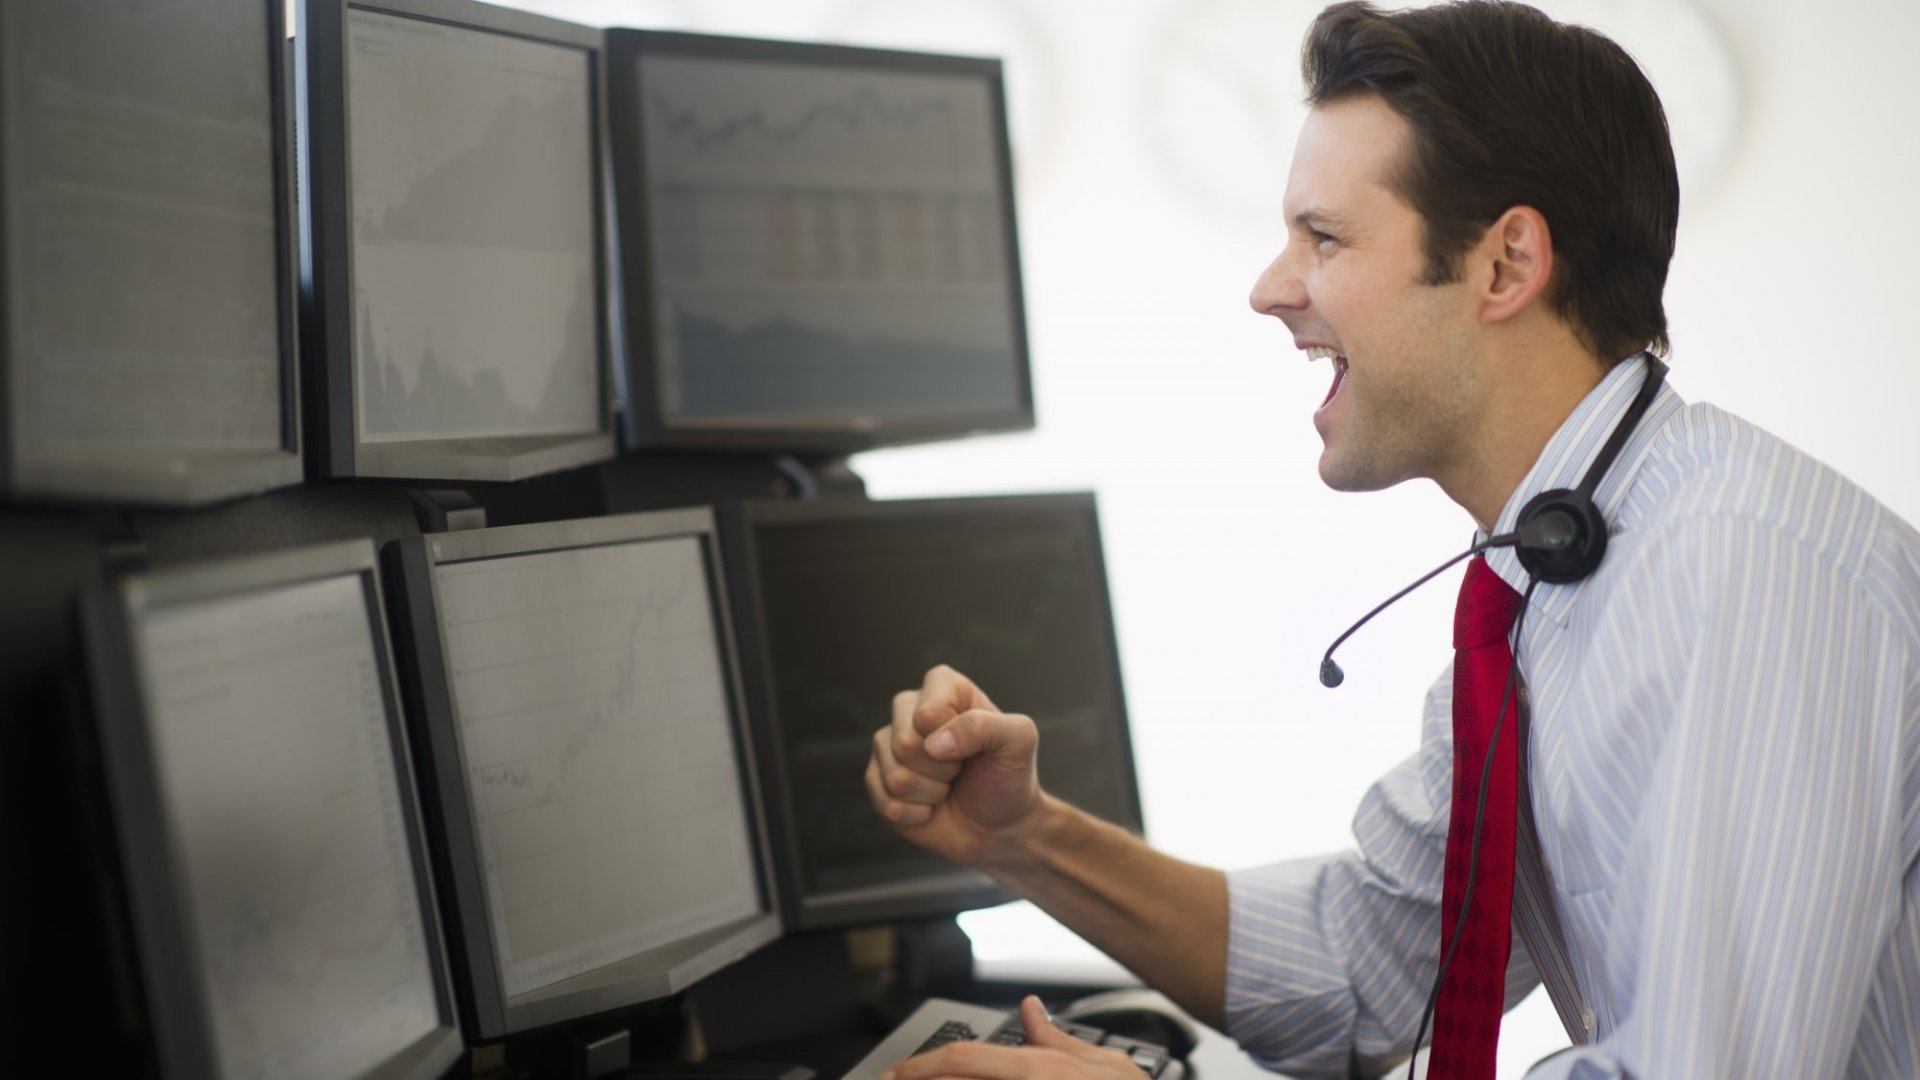 The 3 Rules for Being a Successful Day Trader